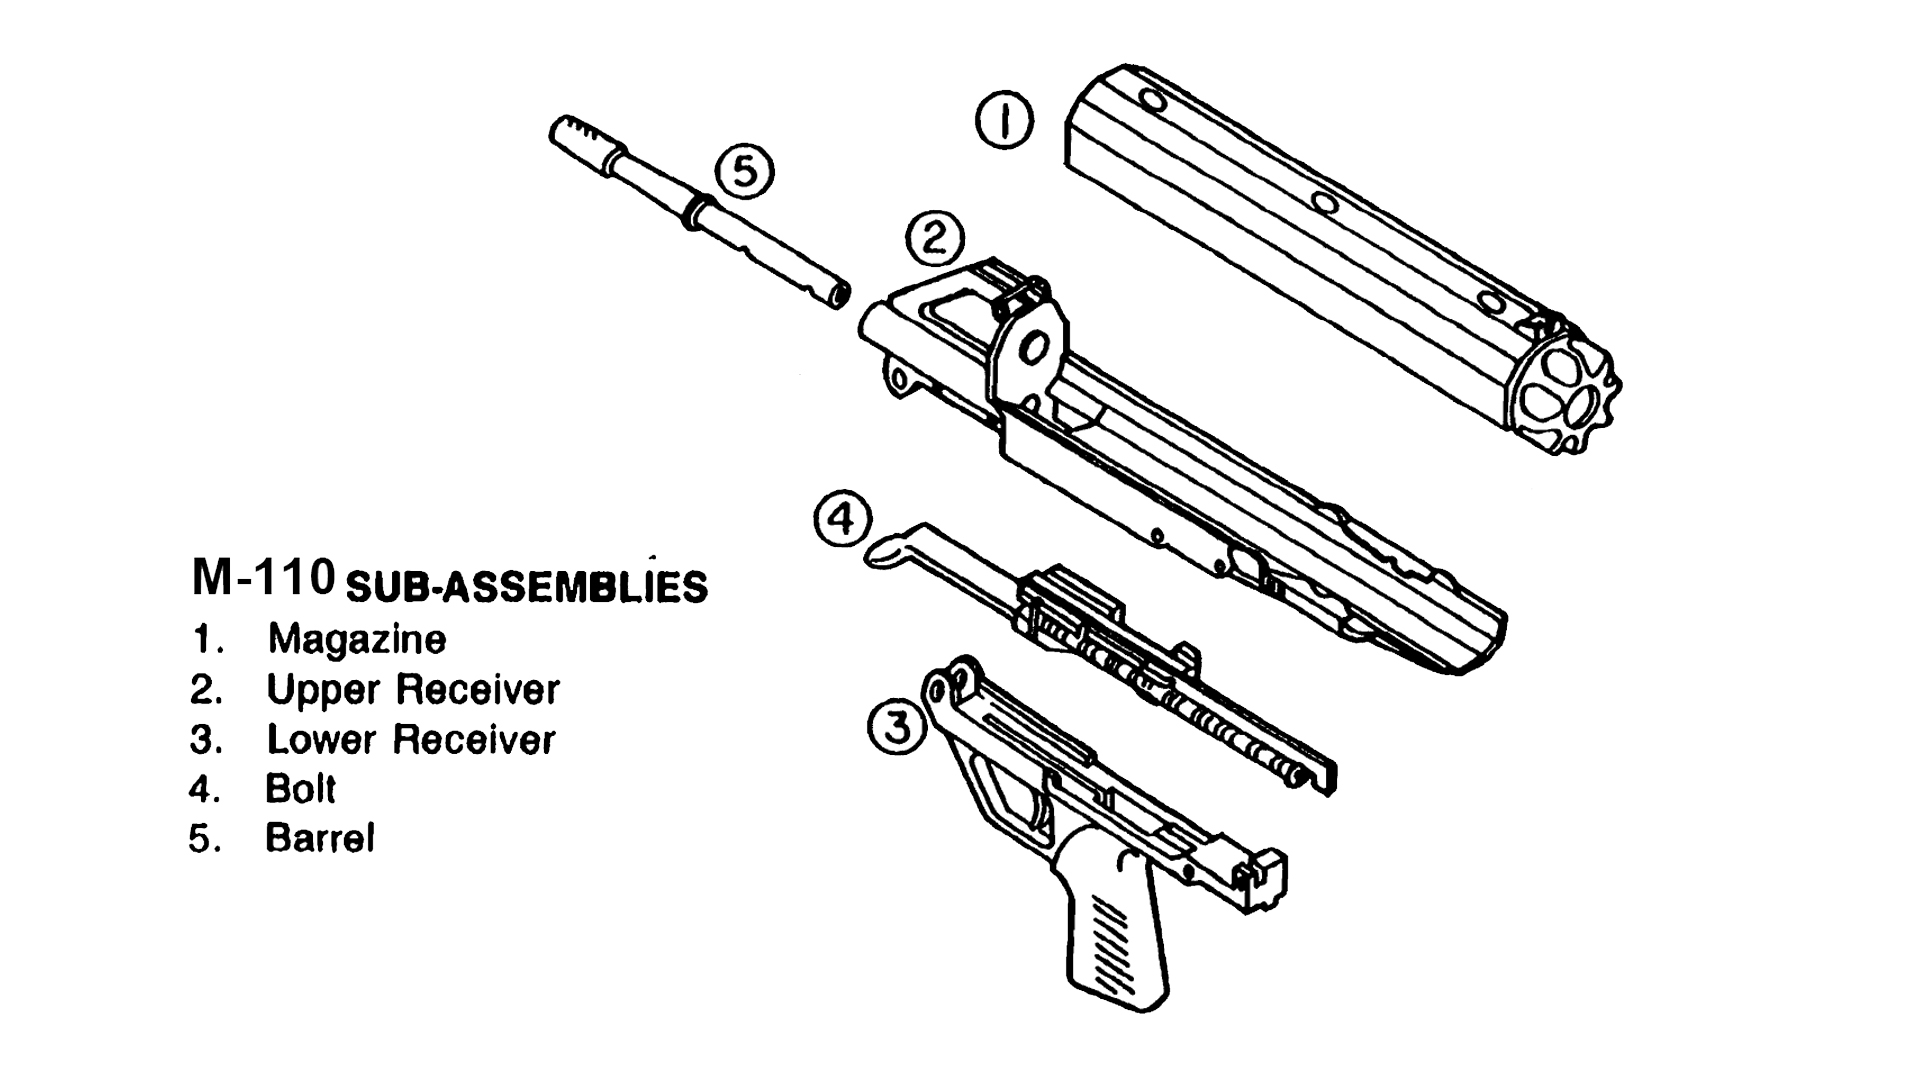 M-110 Sub Assembly